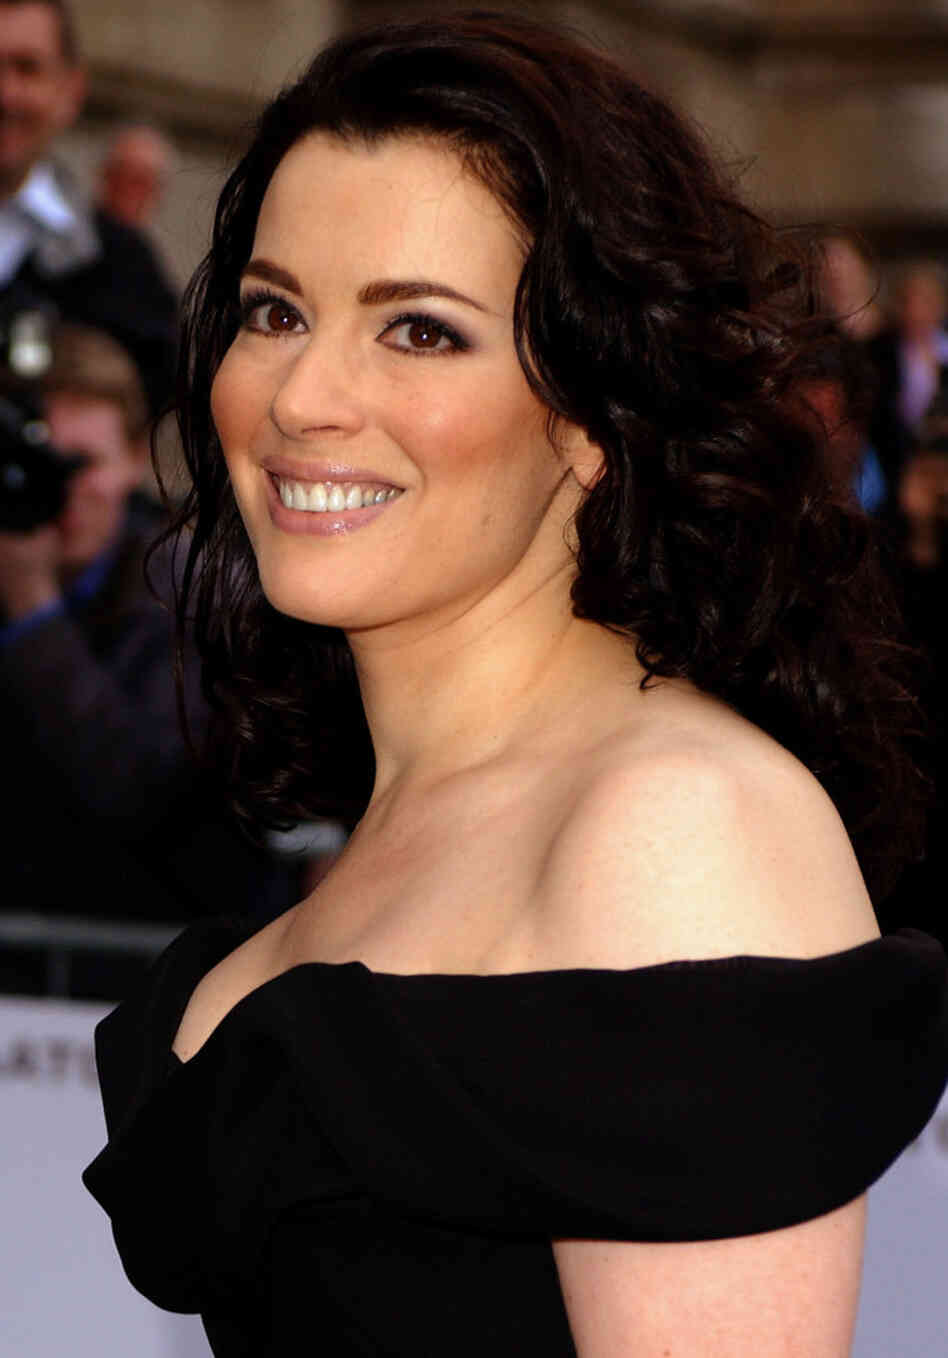 Nigella Lawson has enjoyed mobile success with her app, Nigella Quick Collection.